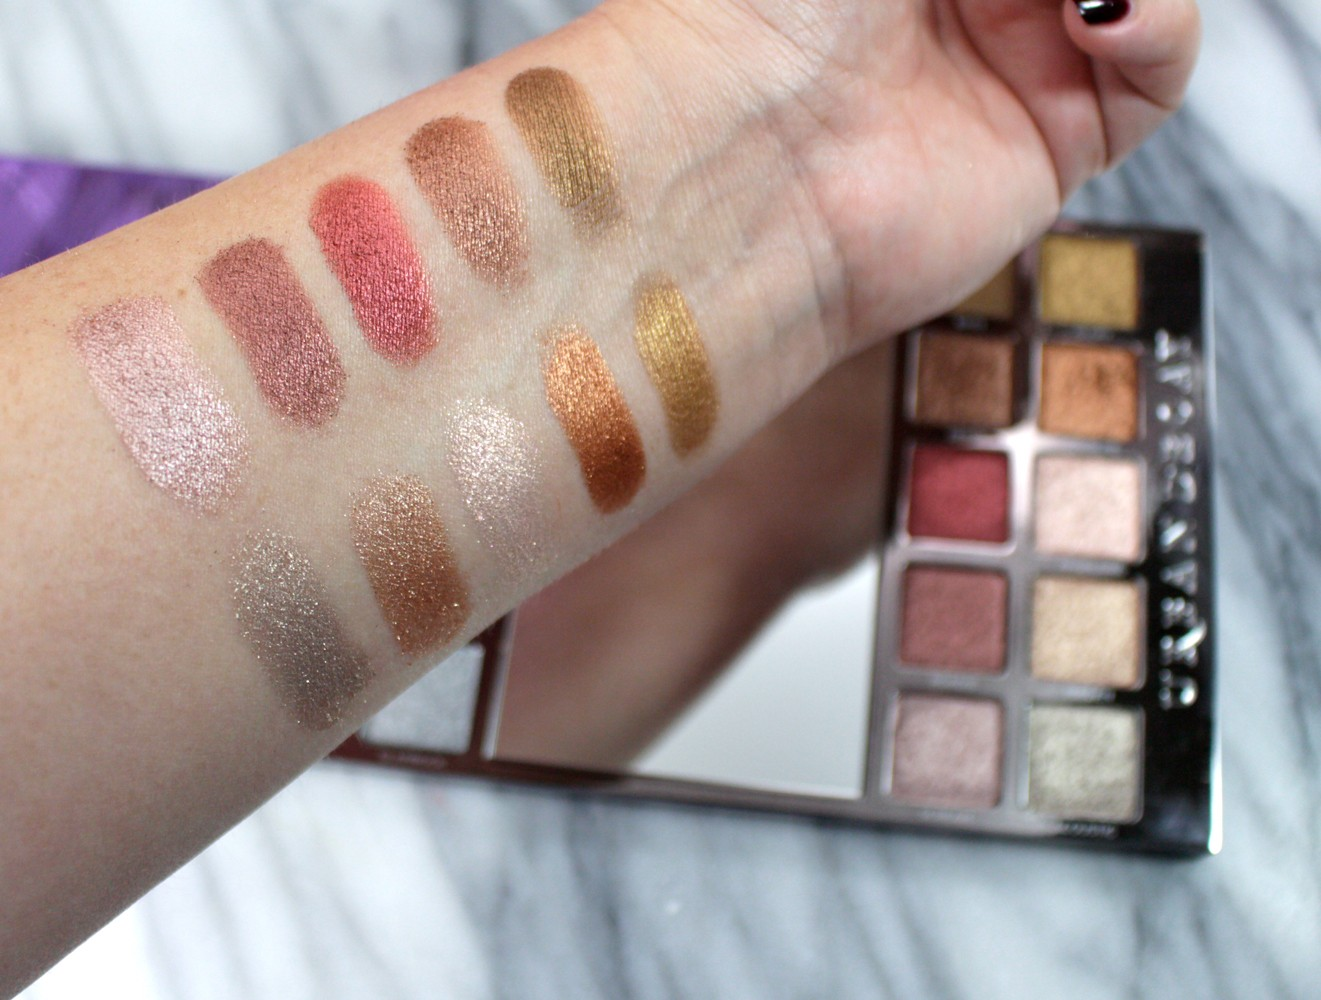 Urban Decay Heavy Metals Eyeshadow Palette Swatches - Urban Decay Heavy Metals Eyeshadow Palette review by popular Los Angeles cruelty free beauty blogger My Beauty Bunny